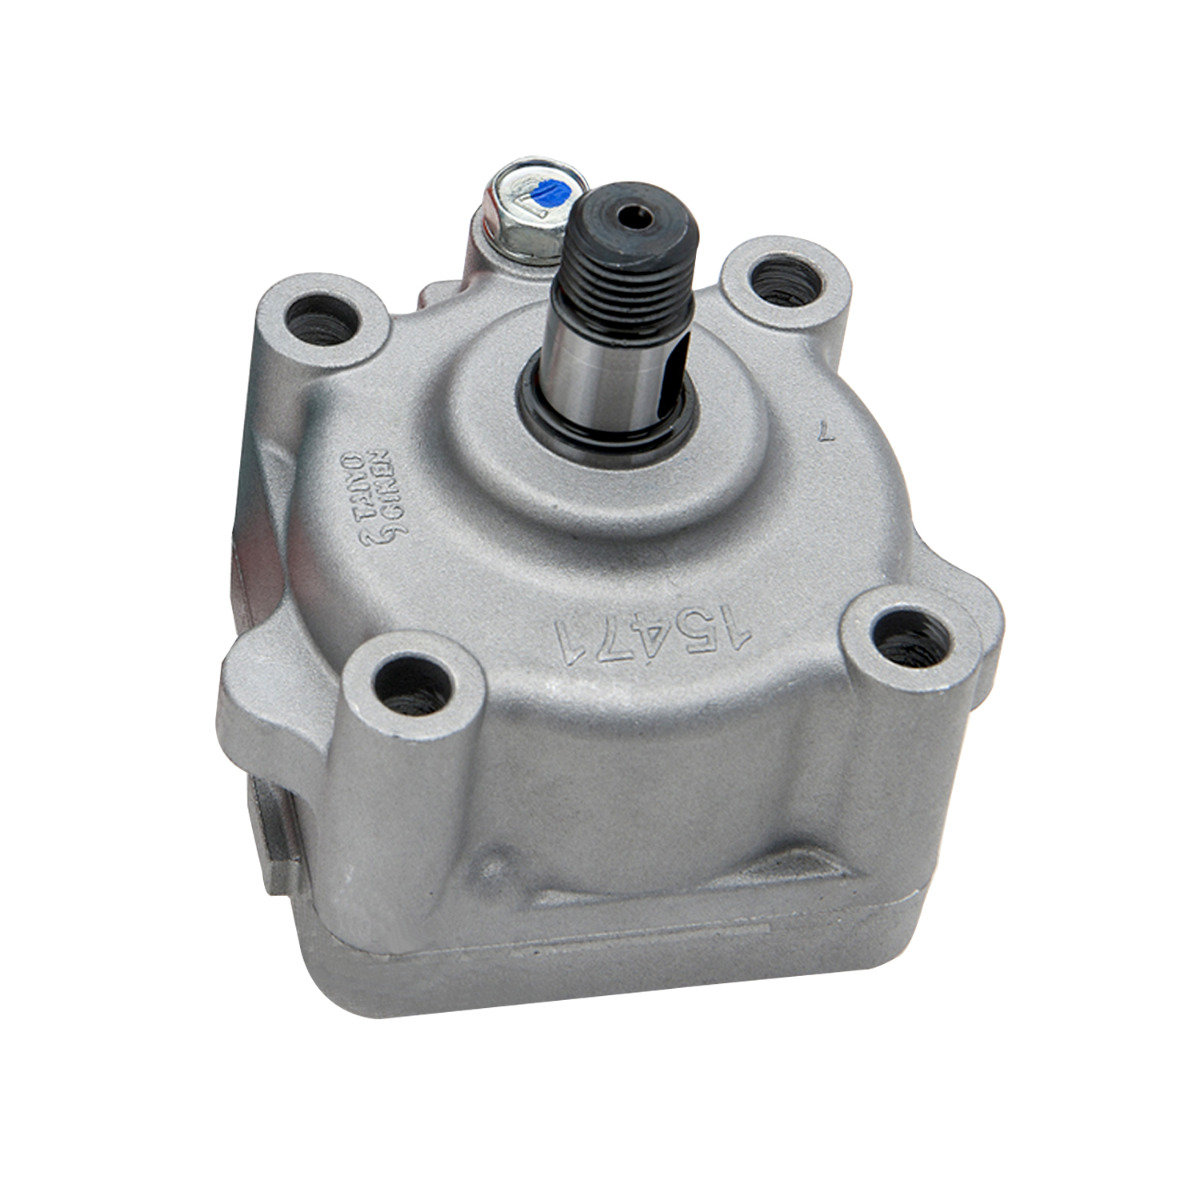 Oil Pump 15471-35012 Compatible with Kubota Wheel Loader R420 R420S R520 R520S